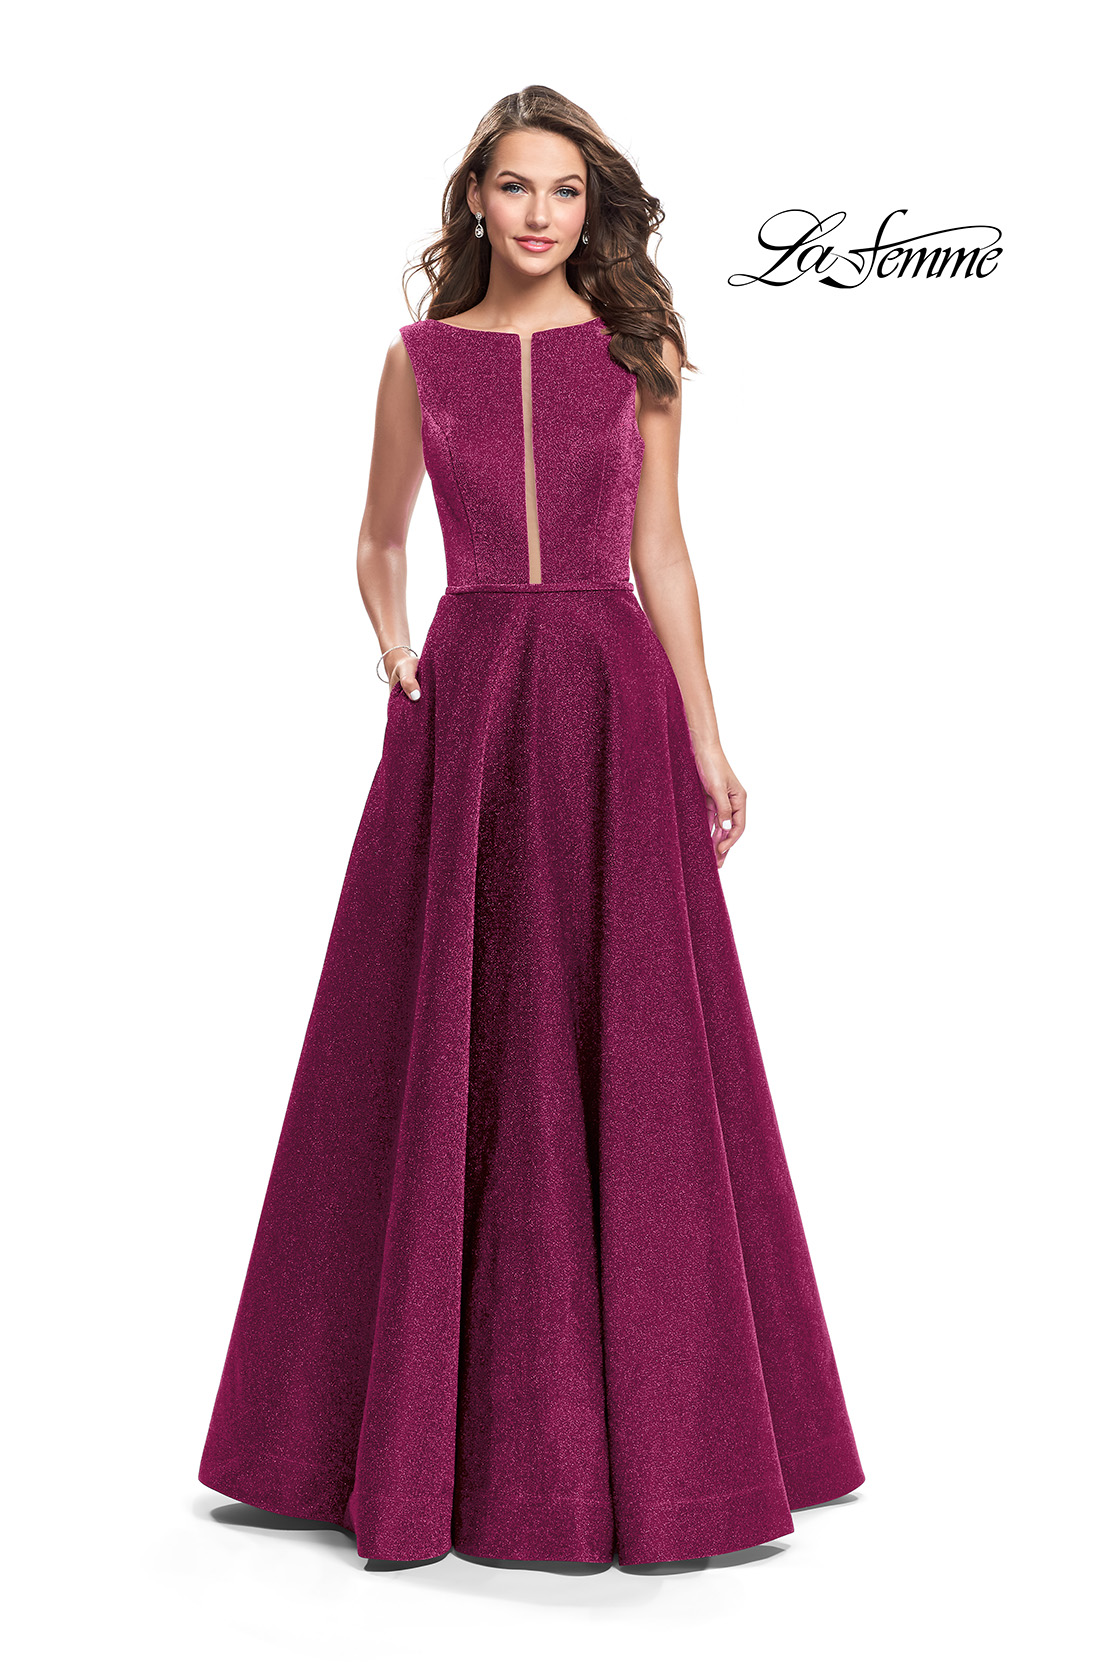 2e7cb96f1a3e ... Prom dresses; La Femme 25895. Picture of: High Neck Sparkling A-line  Dress with Strappy Open Back, Style